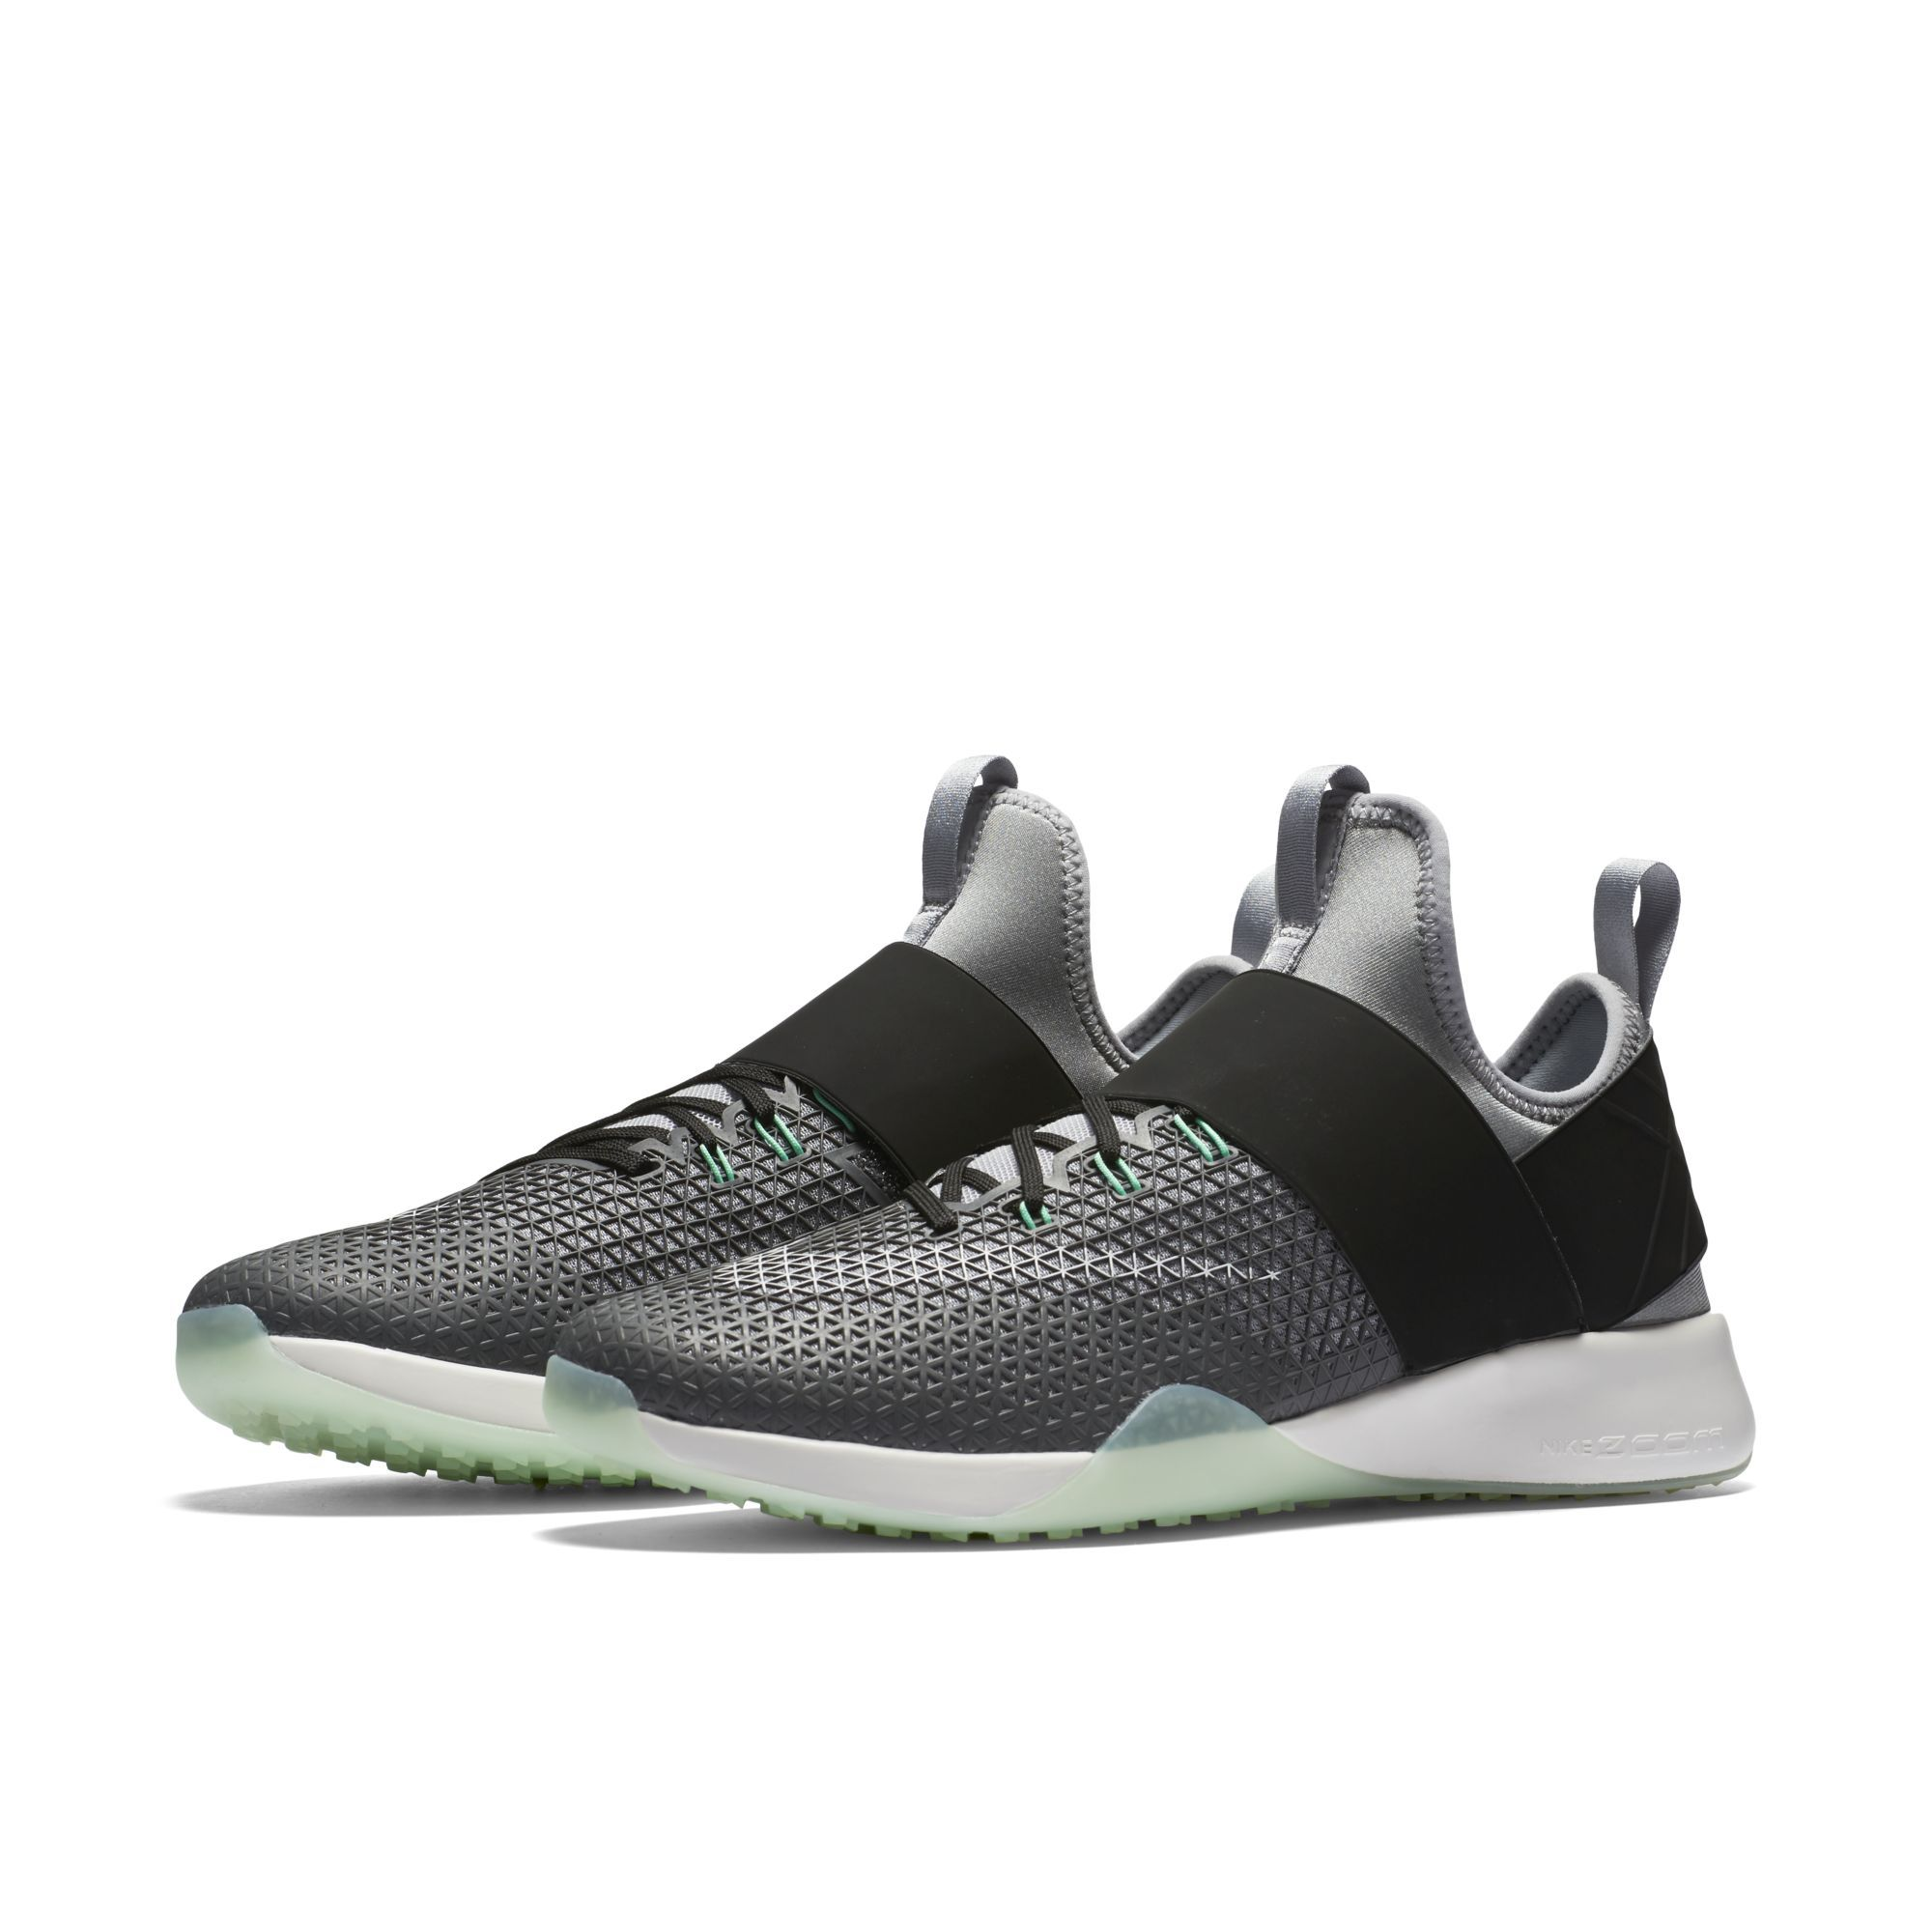 e6a4a0eaa Nike Air Zoom Strong - Grey - Full | Staying Healthy | Pinterest